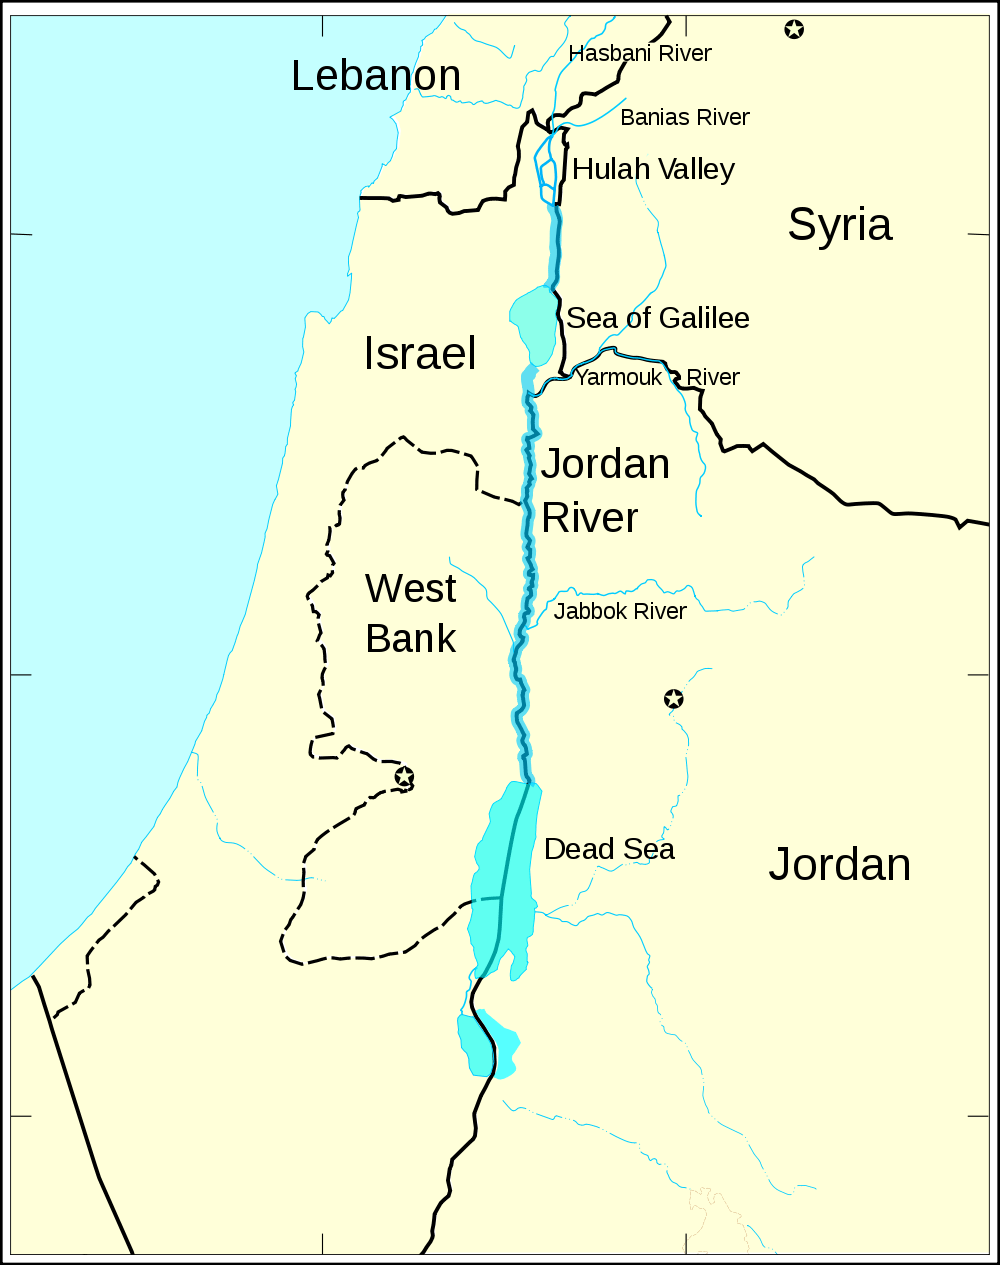 israel map with An Altruistic Angle Water Wars on Hattin eng likewise Jesusmapj additionally Ruins Spectacular Jerash Jordan likewise Iraque as well Israel.